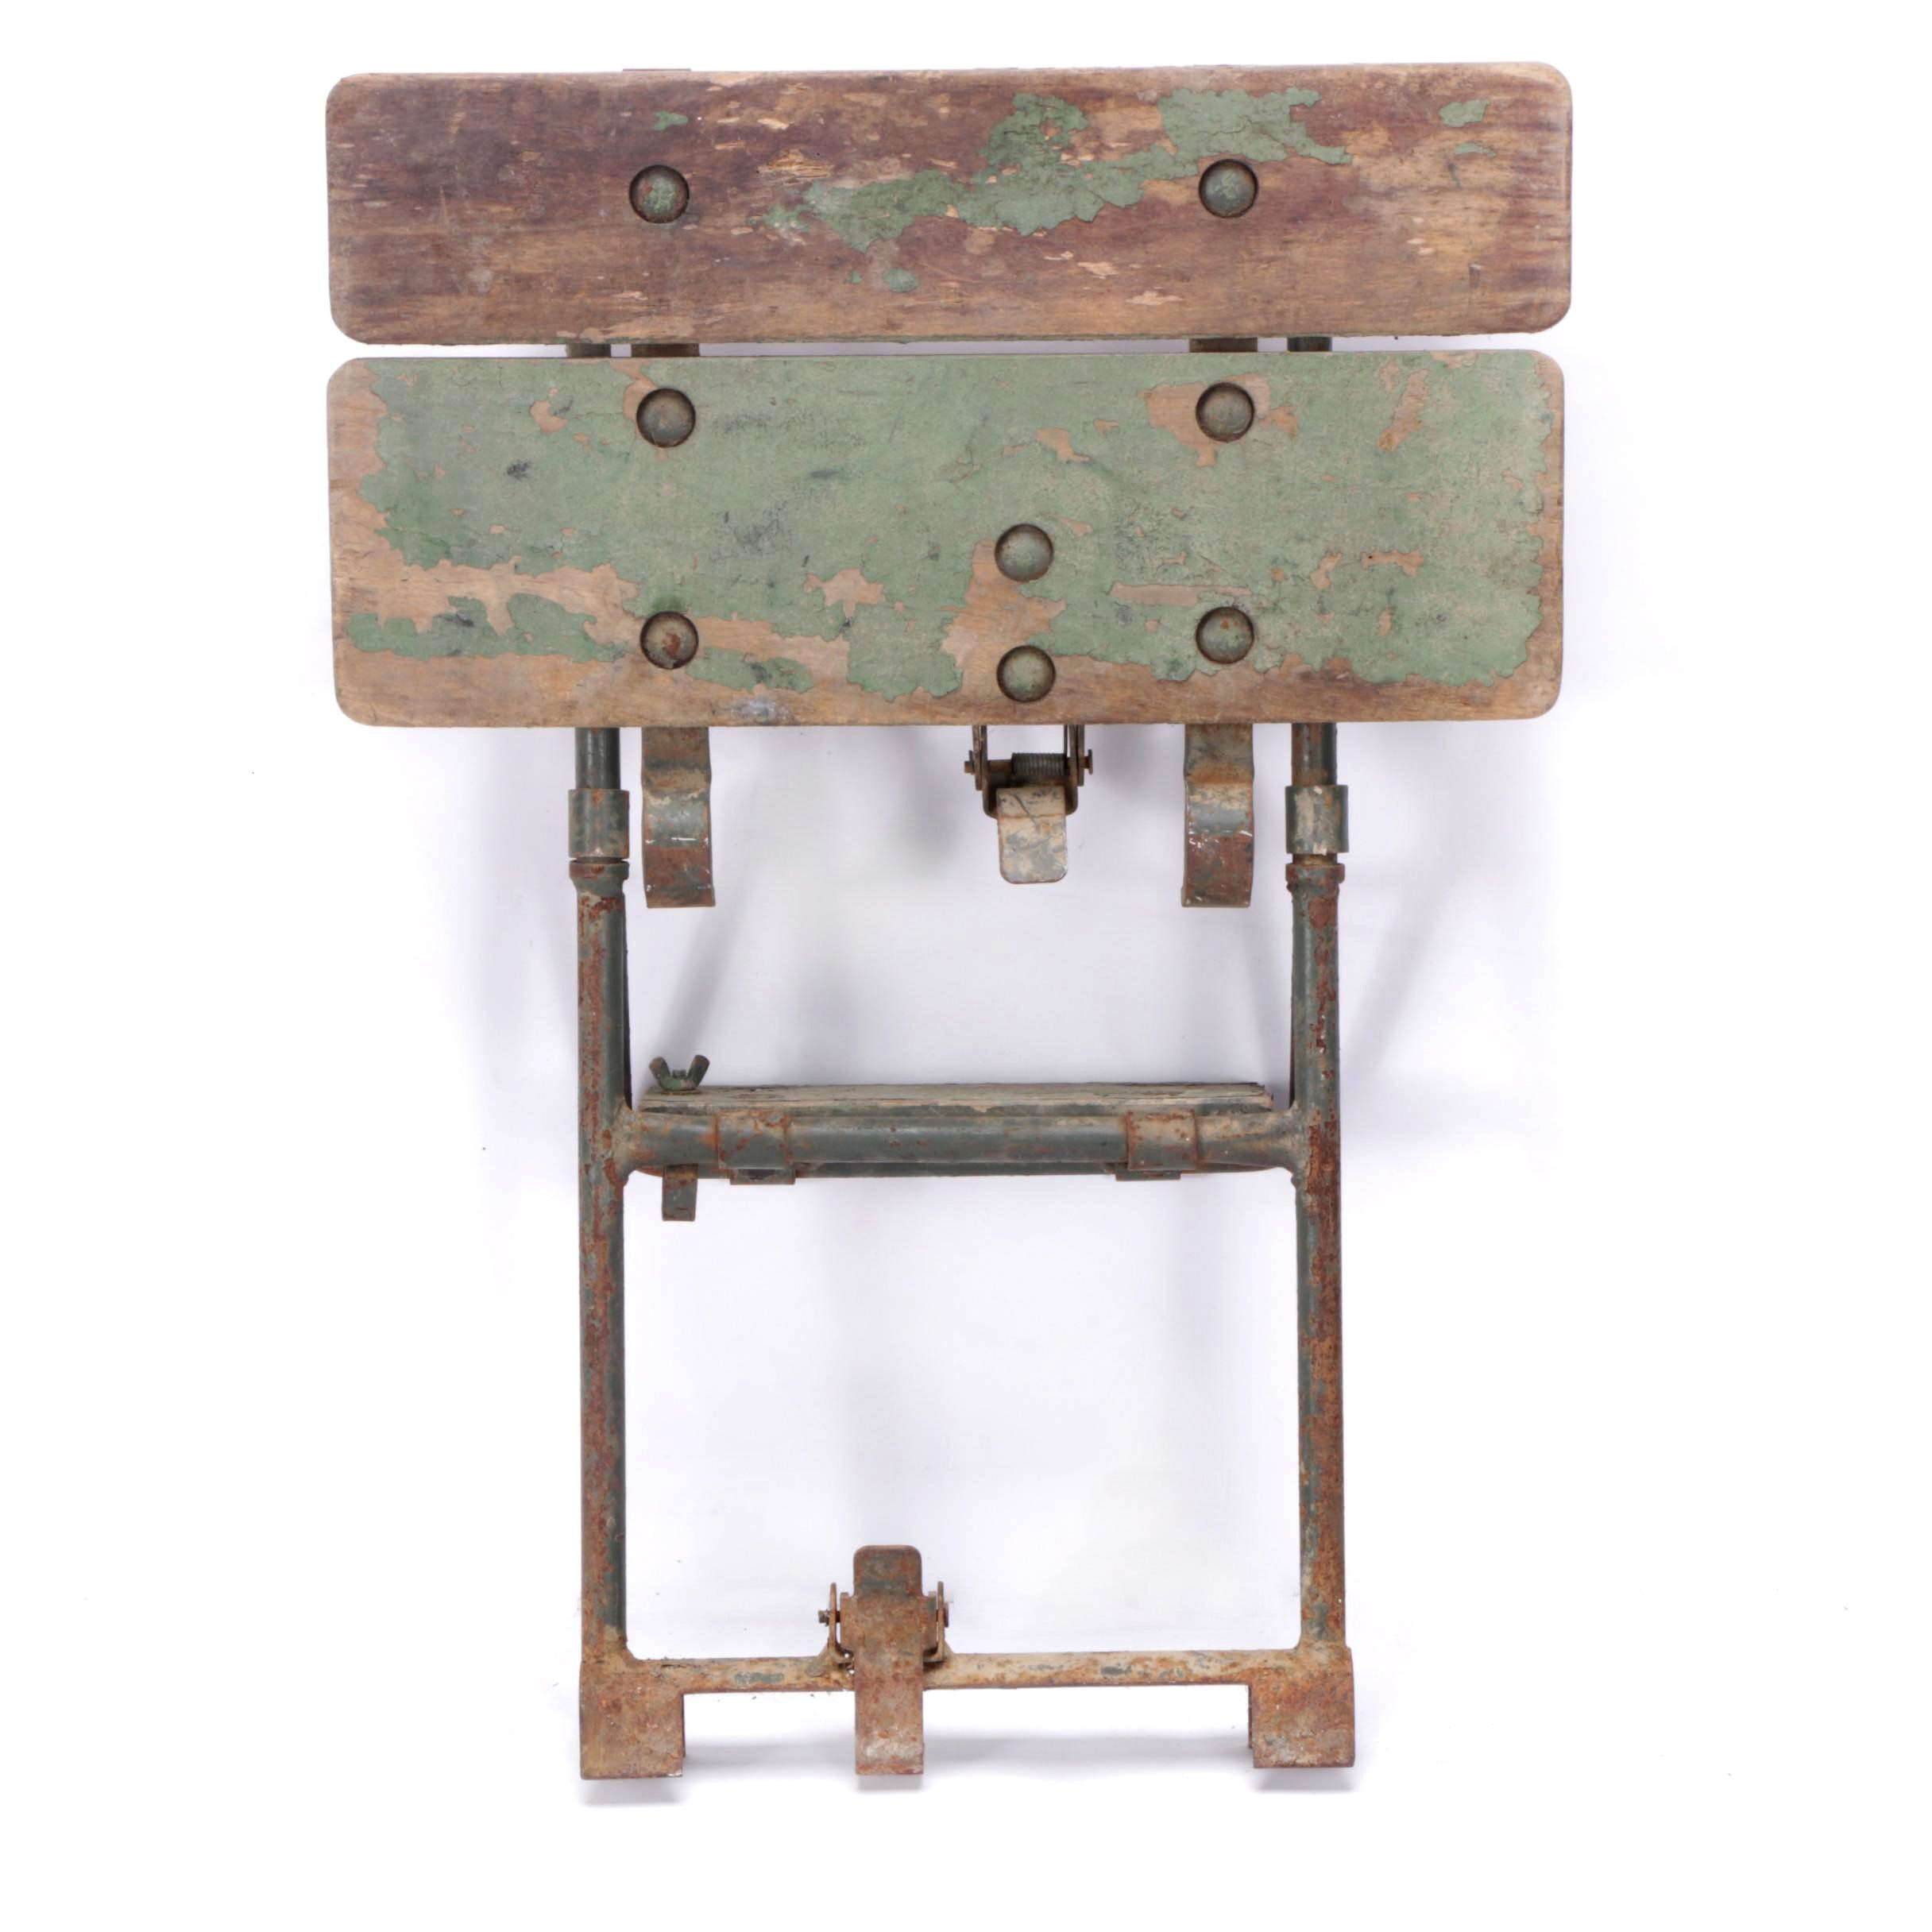 Vintage Metal and Wooden Folding Step Stool